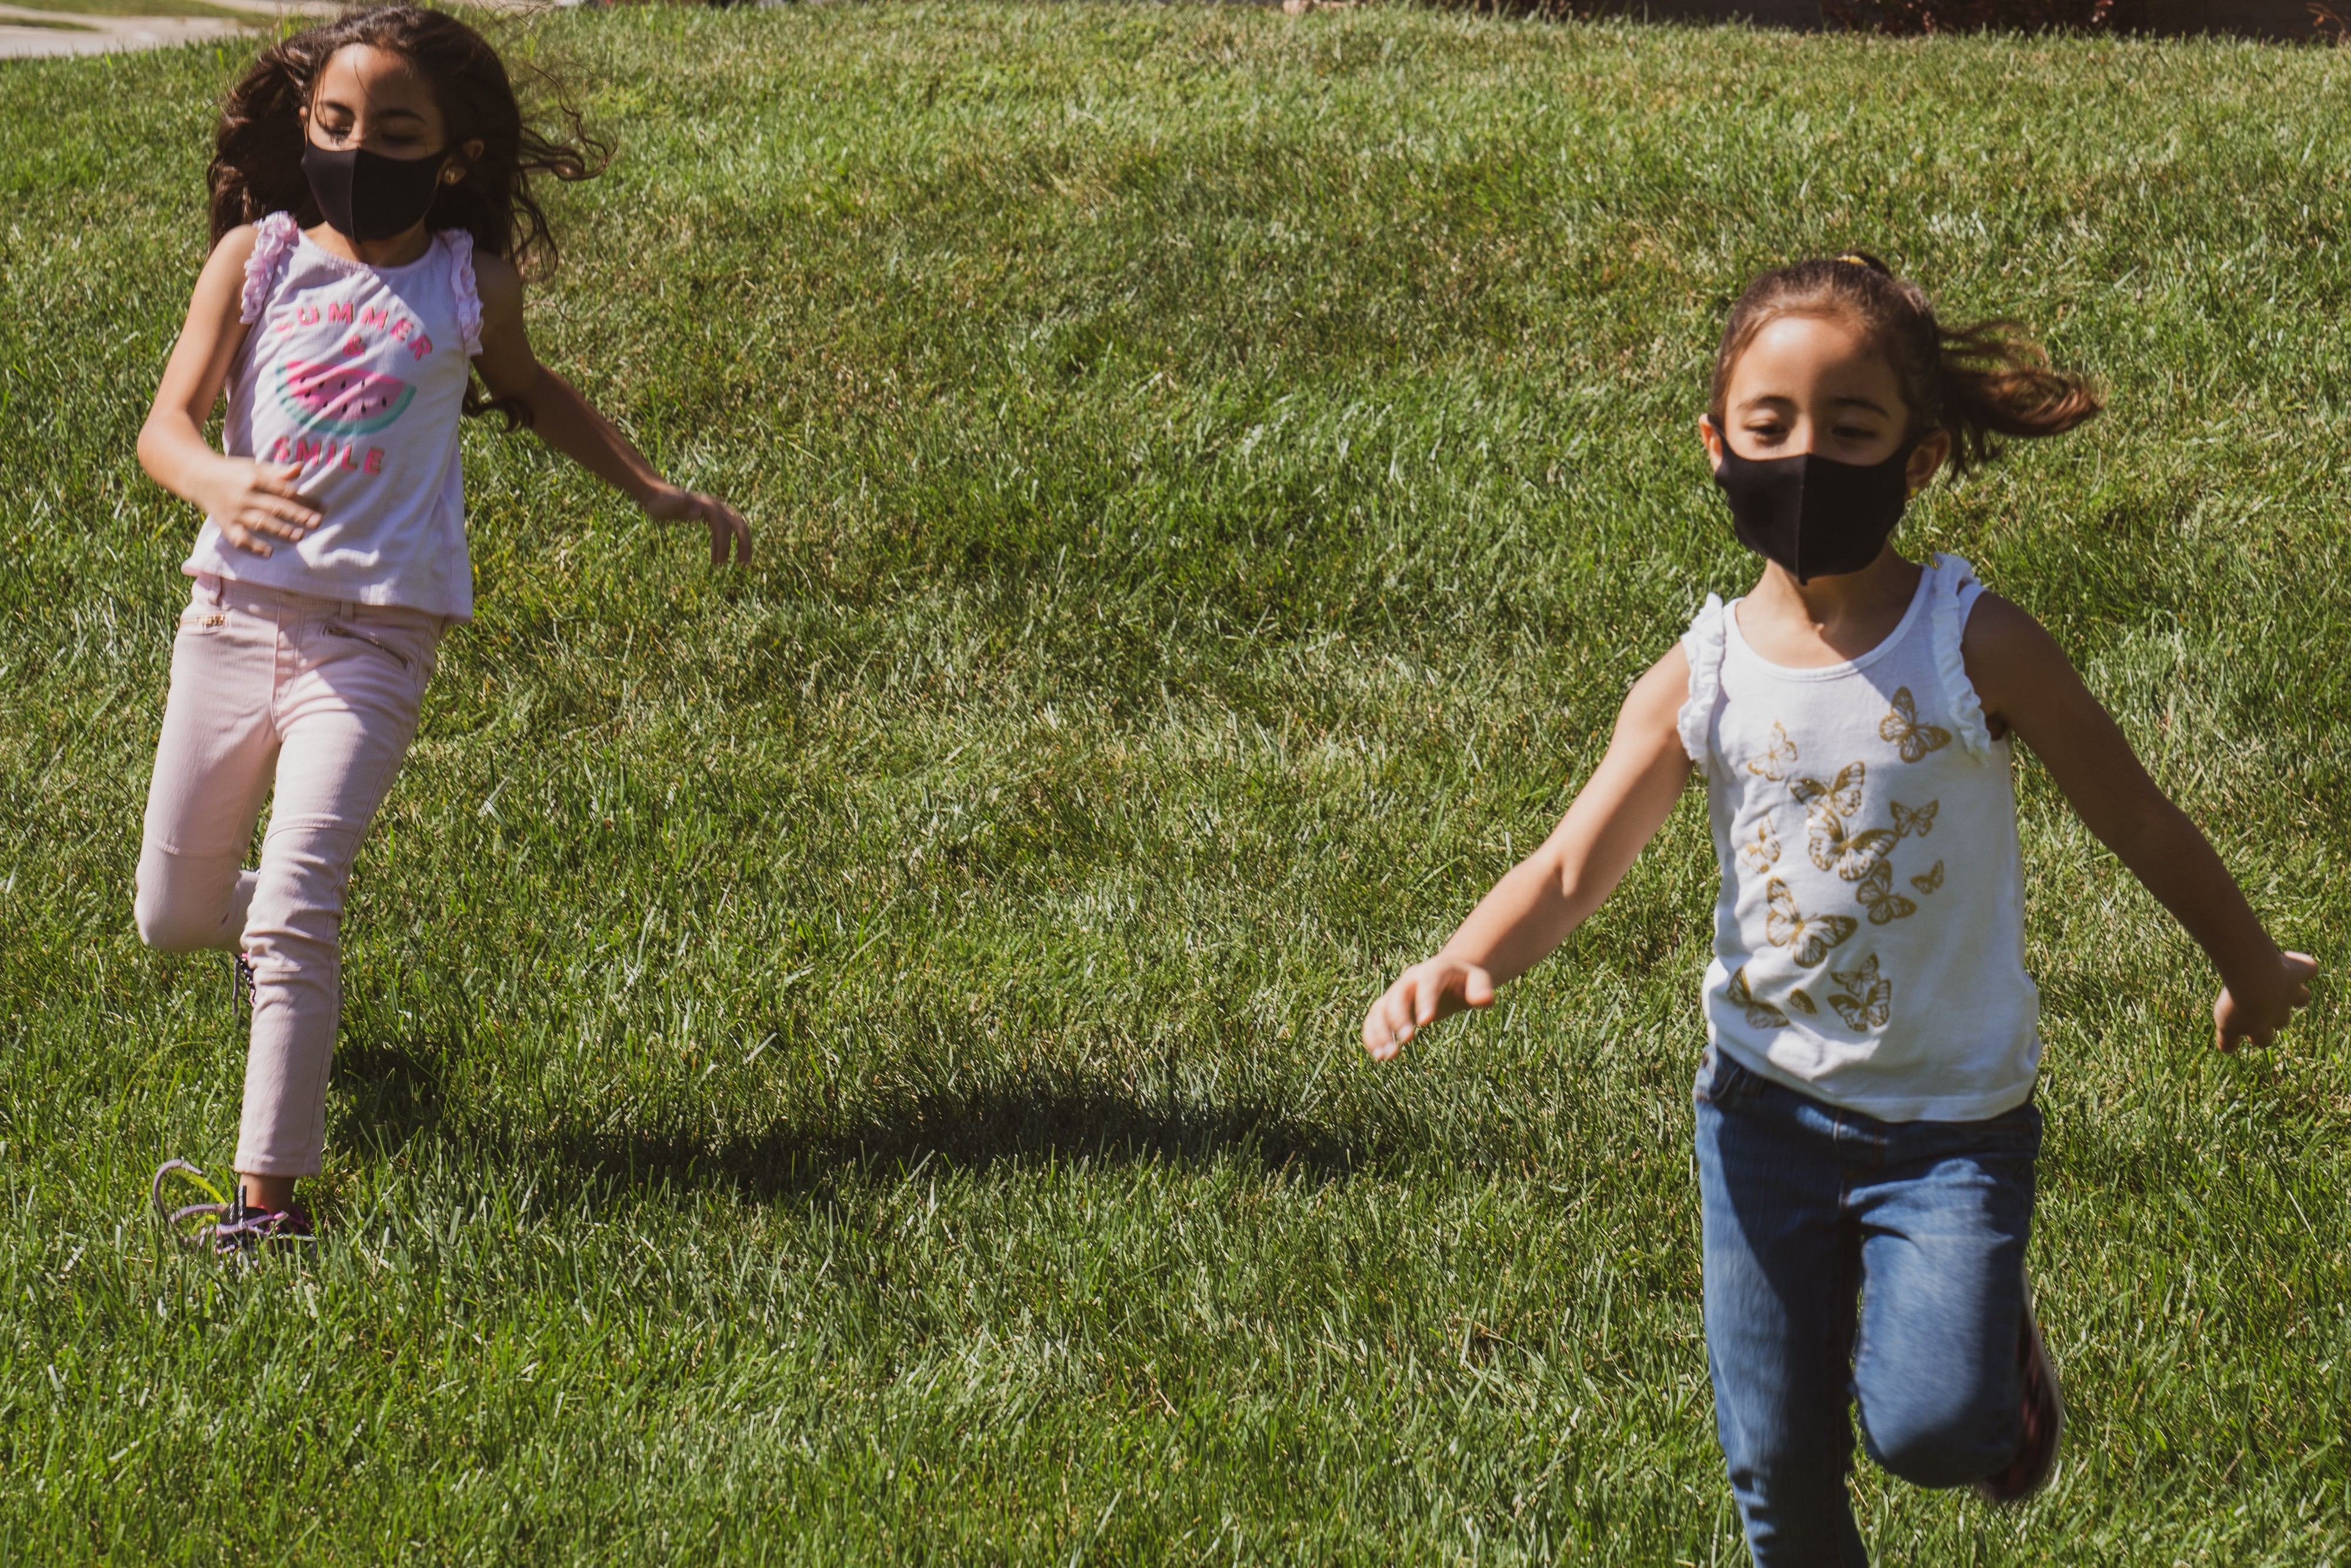 Two young children play outside while wearing COVID-19 face masks.